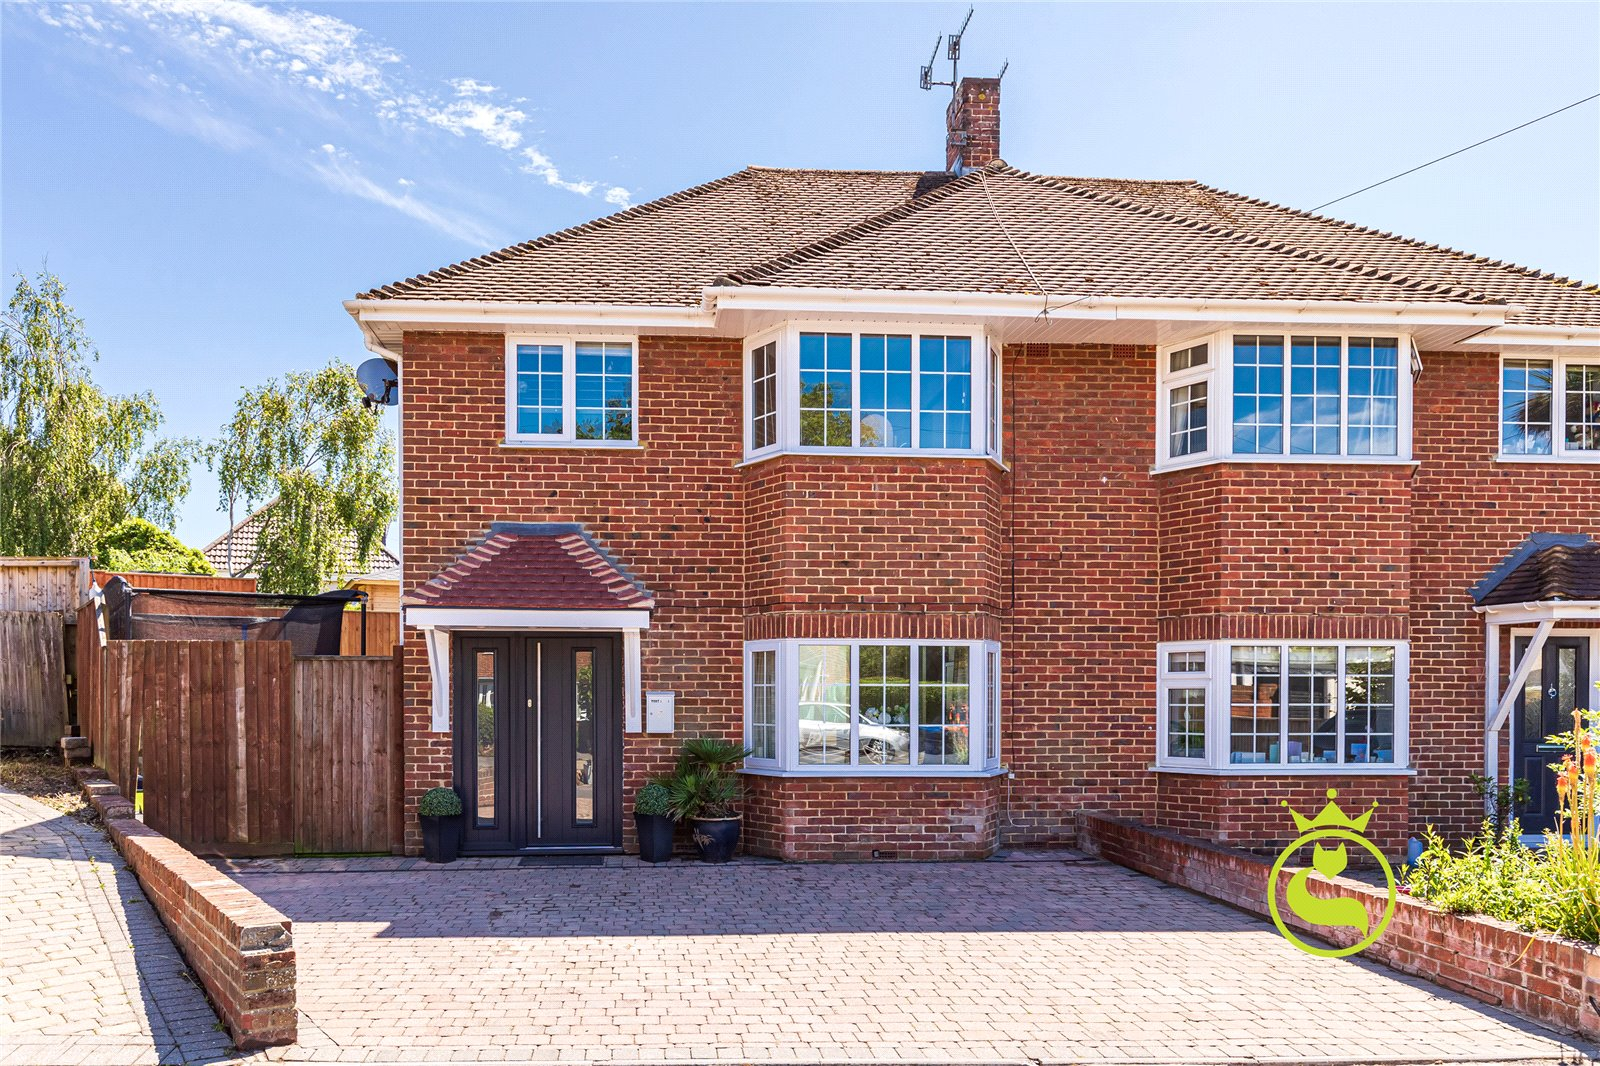 3 bed house for sale in Selworthy Close, Whitecliff, BH14